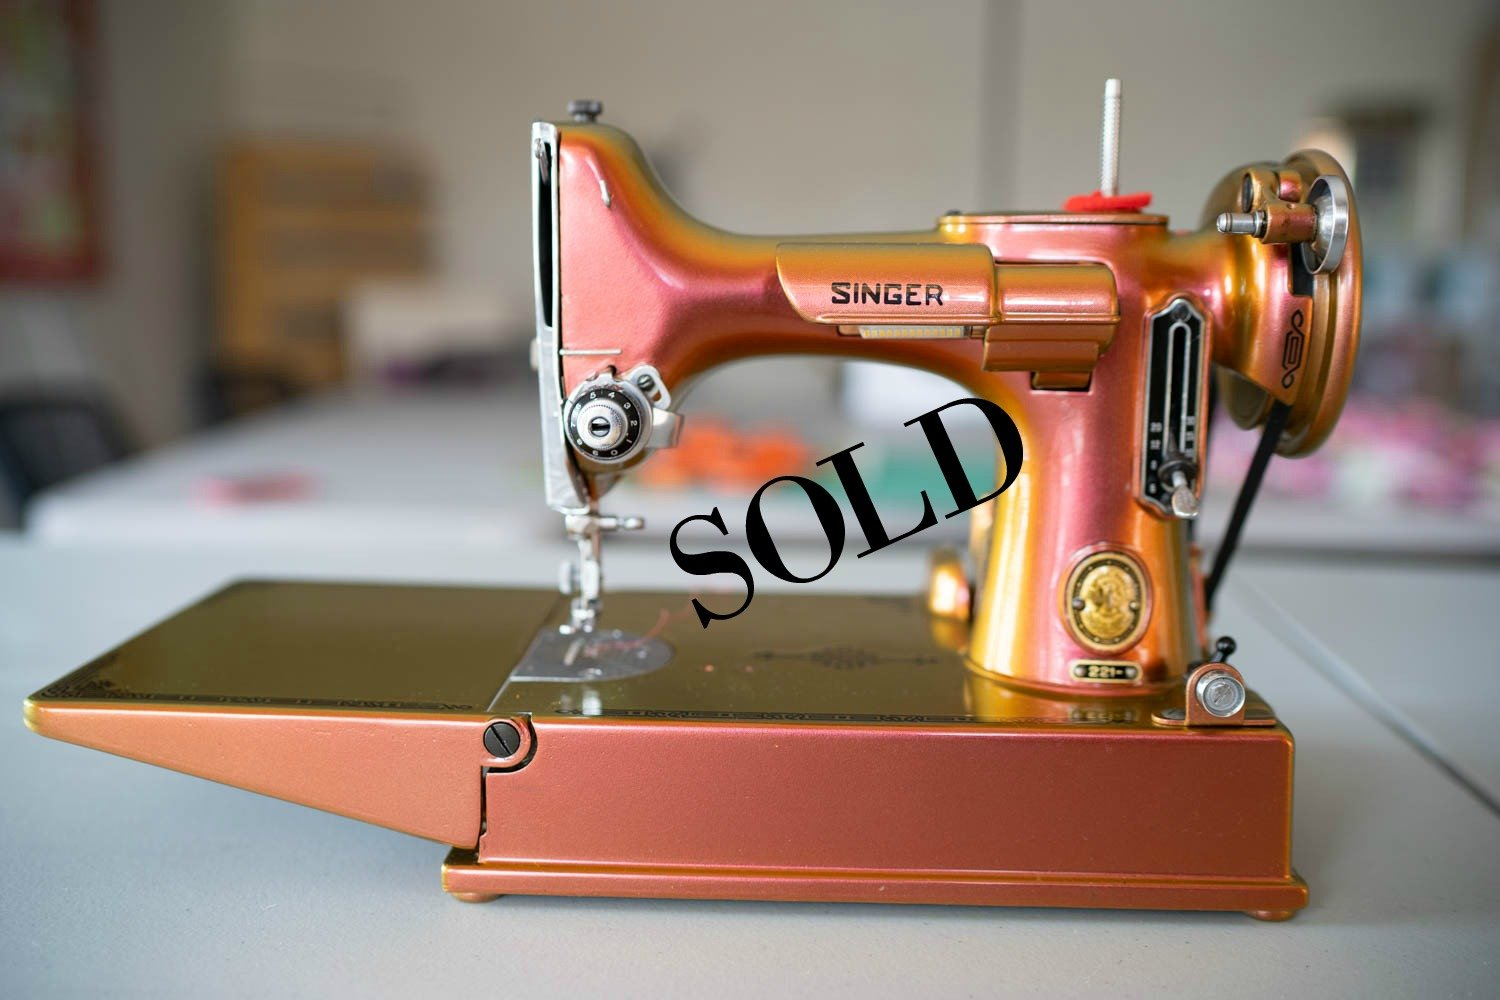 Color Changing Prism Singer Featherweight Machine